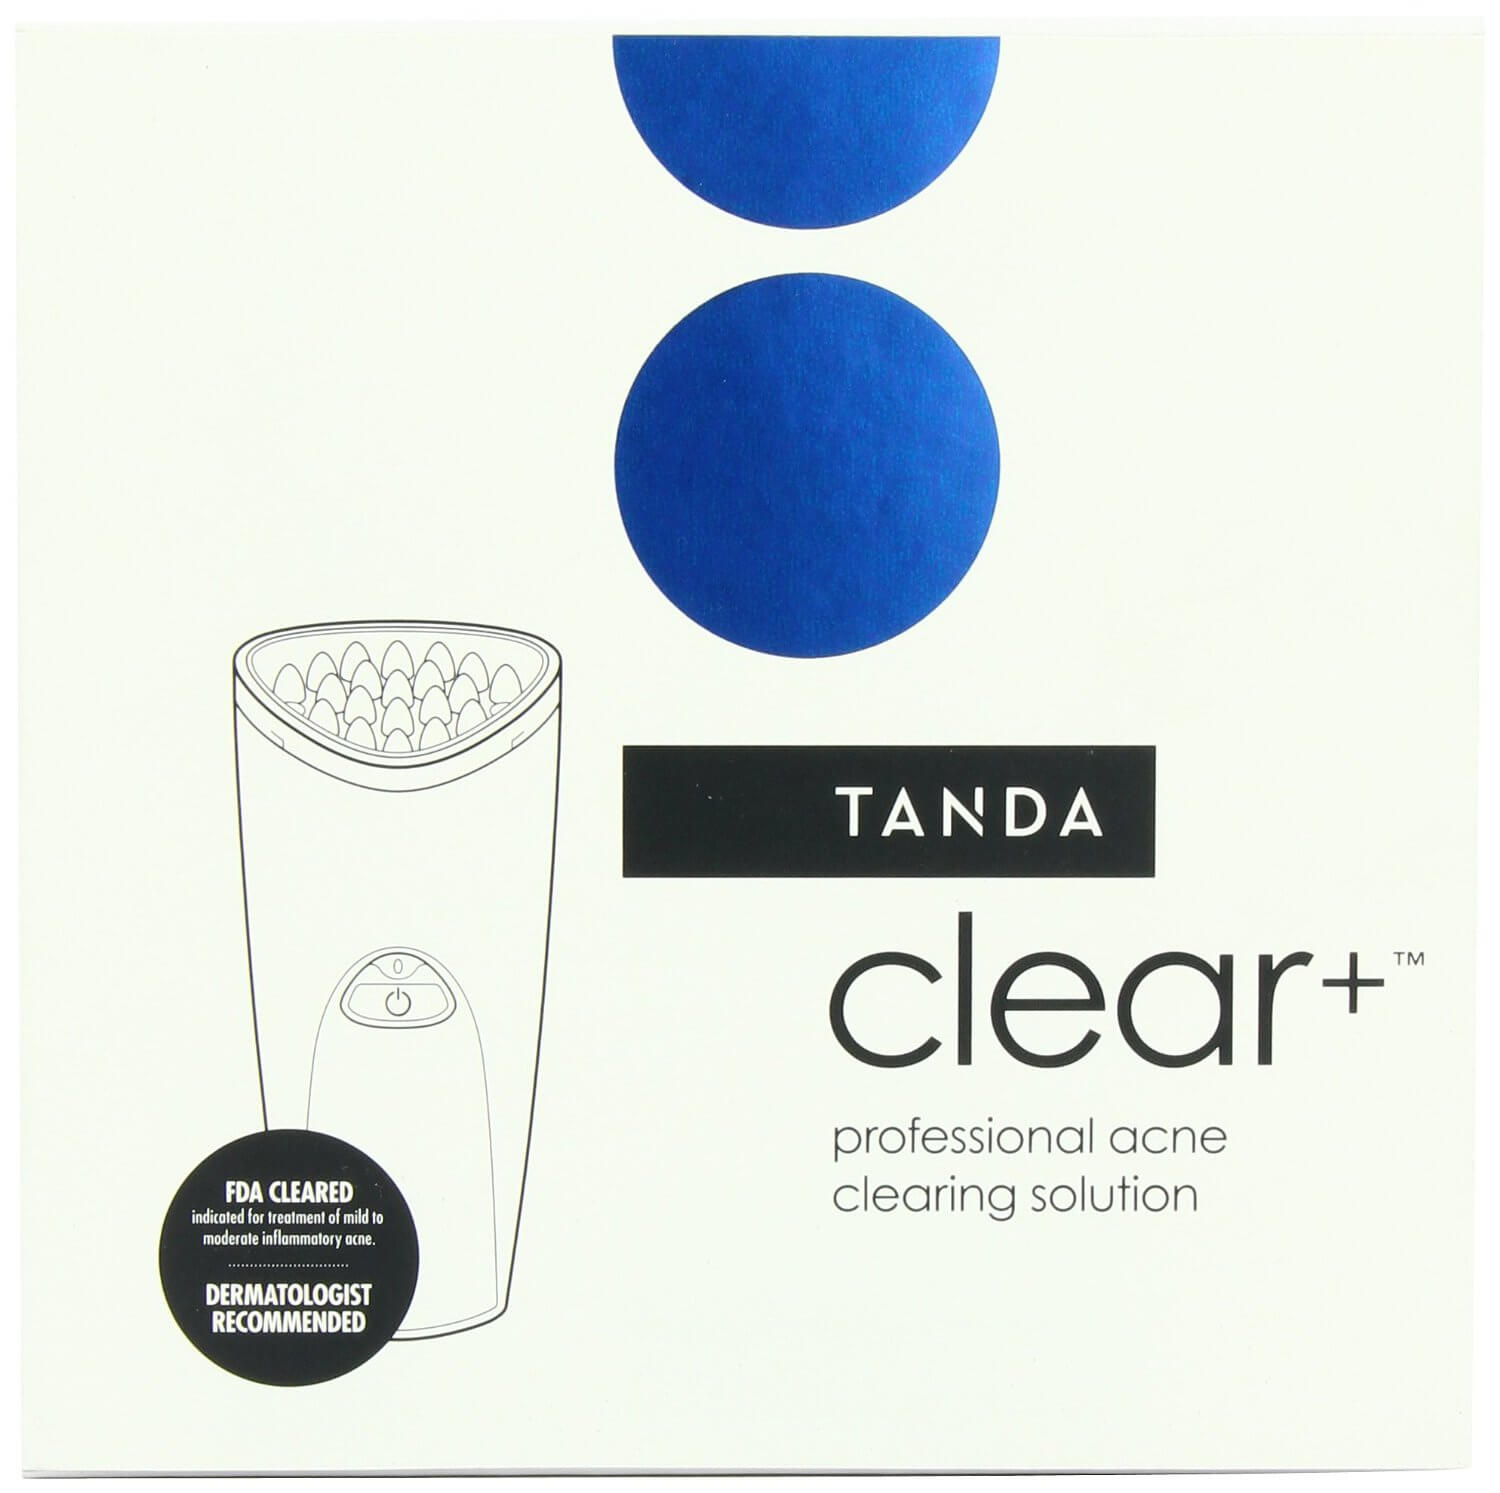 Tanda Clear+ Plus Overview